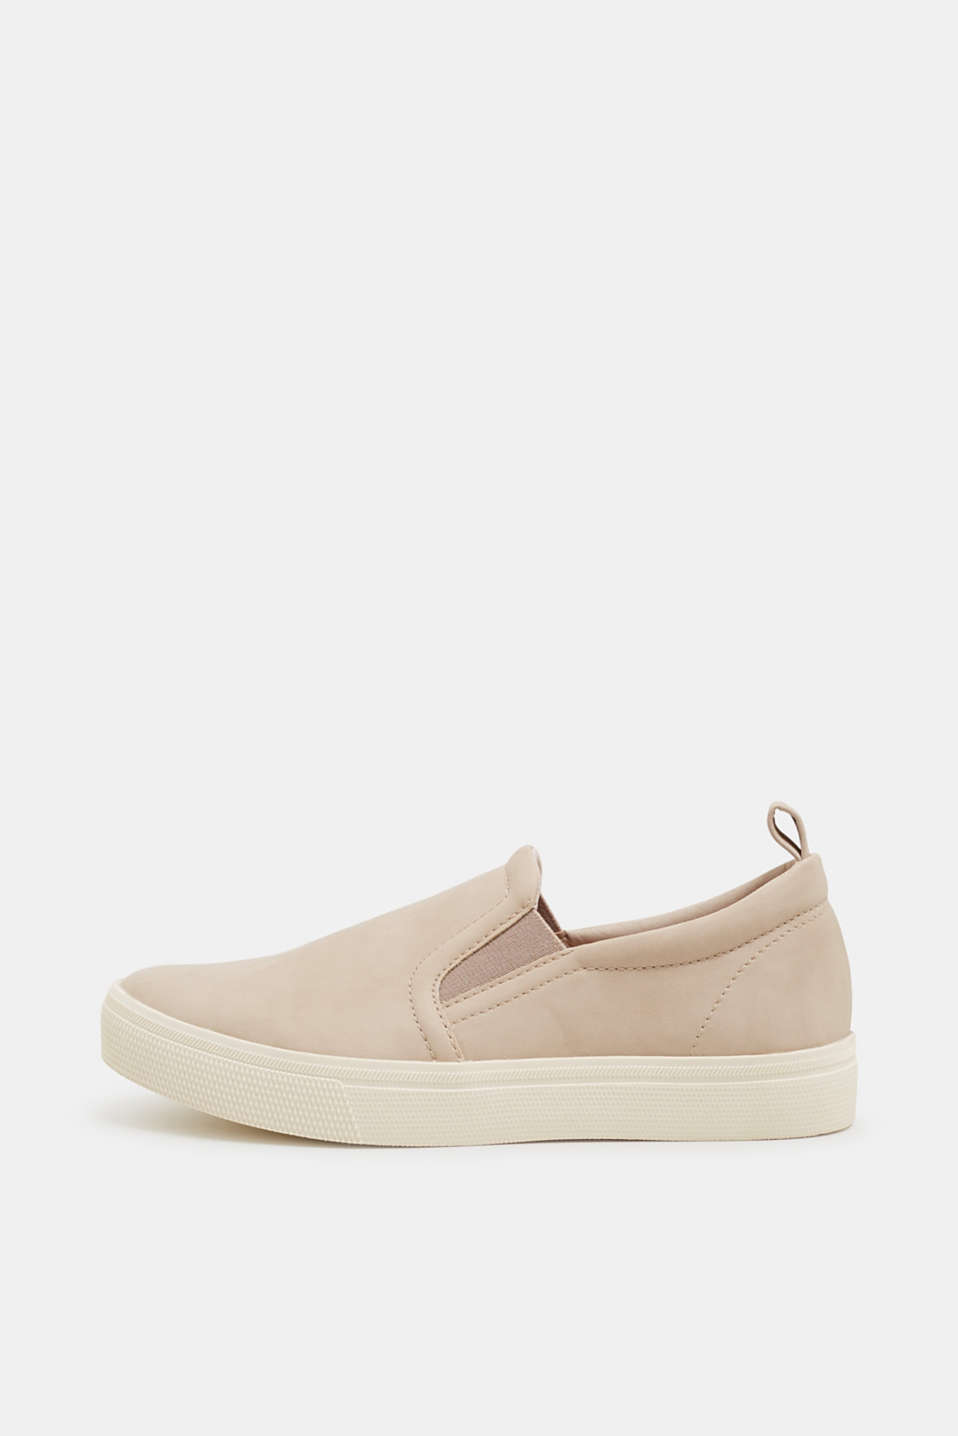 Esprit - Slip On-Sneaker in Nubuk-Optik